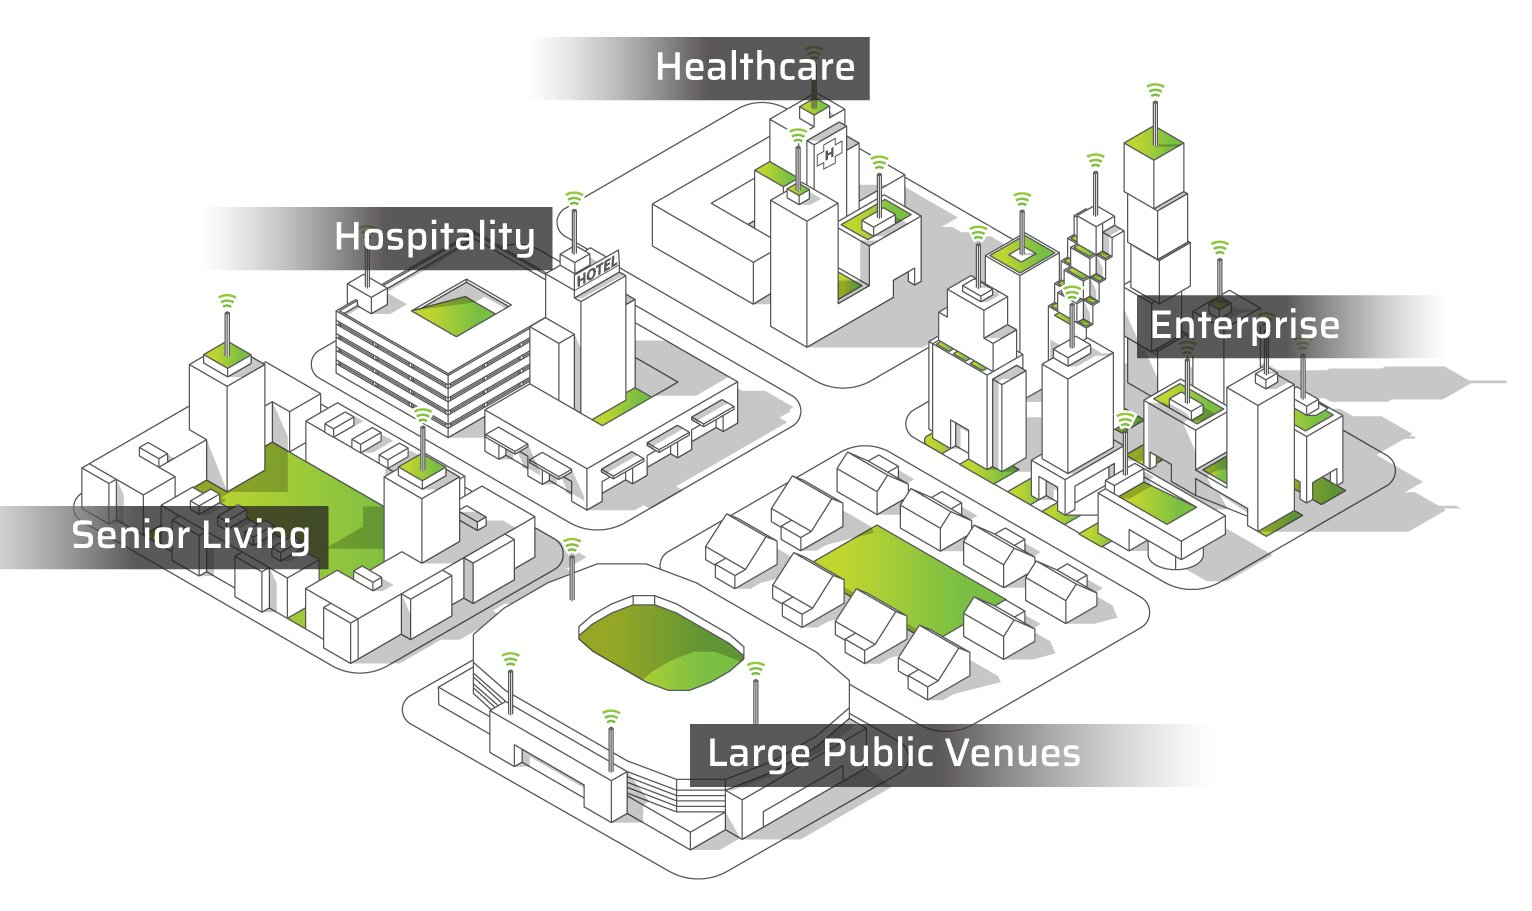 Cityscape showing various markets qypsys services